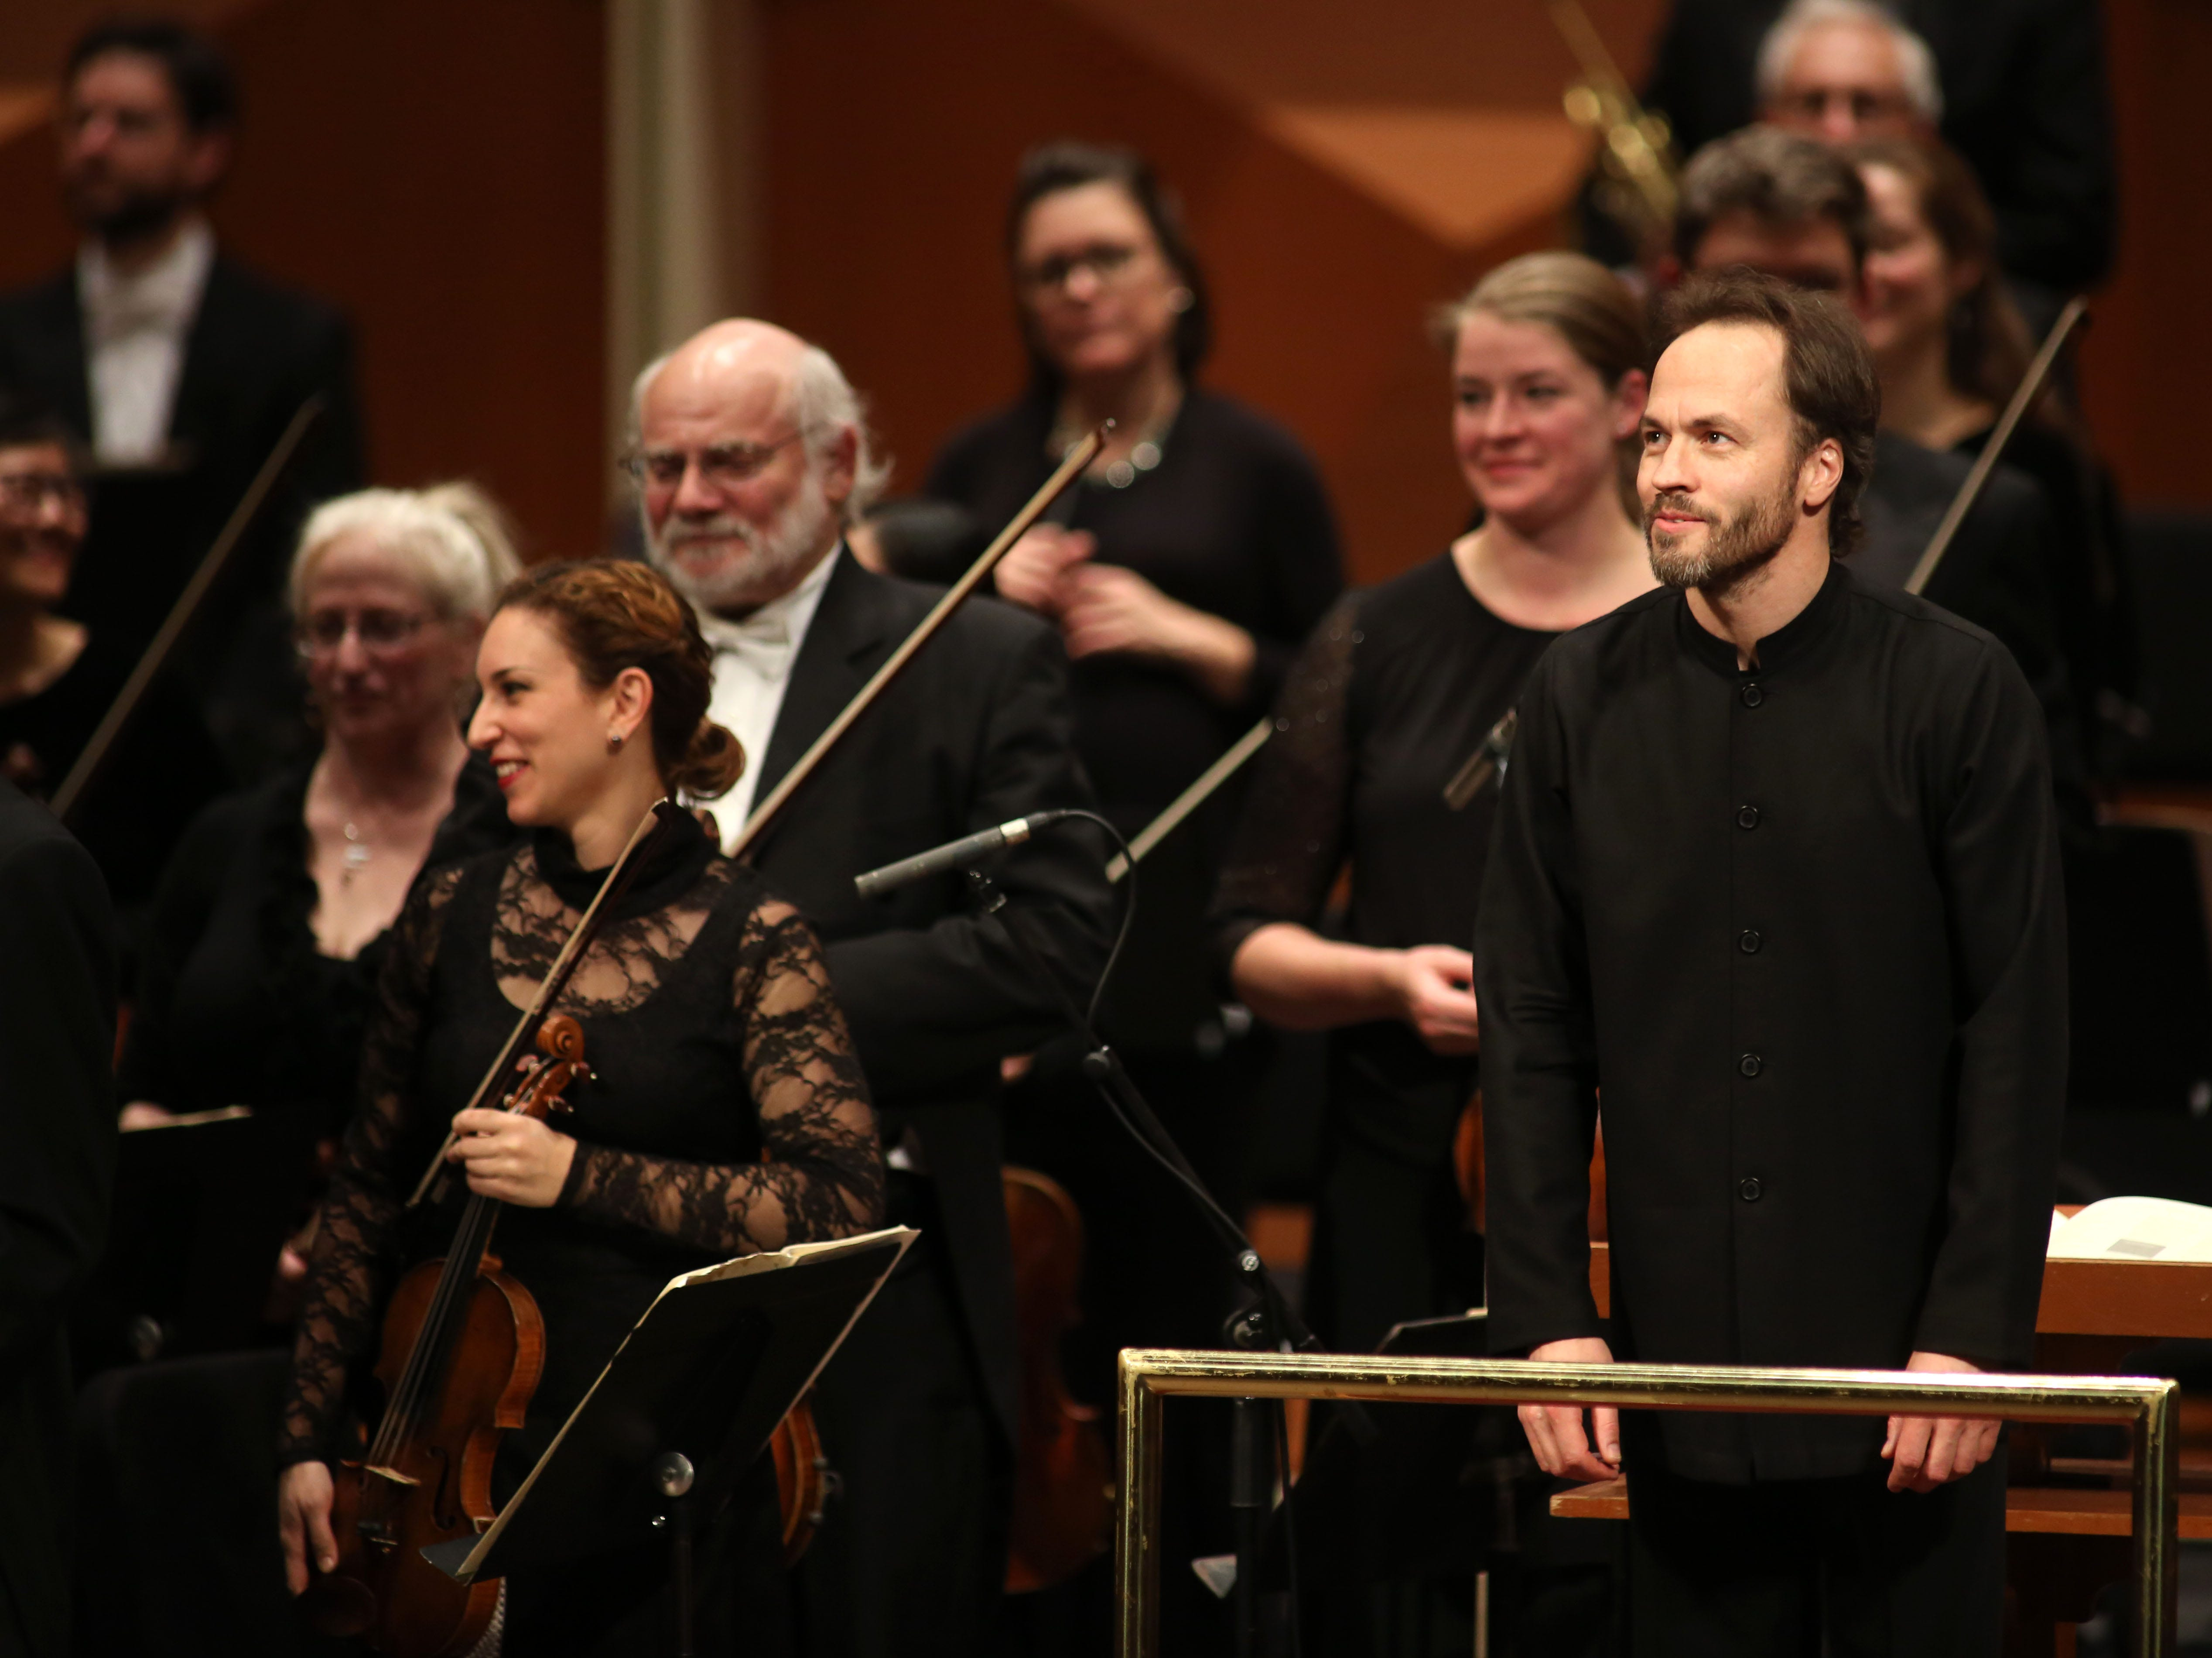 Guest conductor Johannes Debus (right) bows with the Milwaukee Symphony after a performance of Camille Saint-Saens' Symphony No 3 in C minor Saturday night at the Marcus Center.